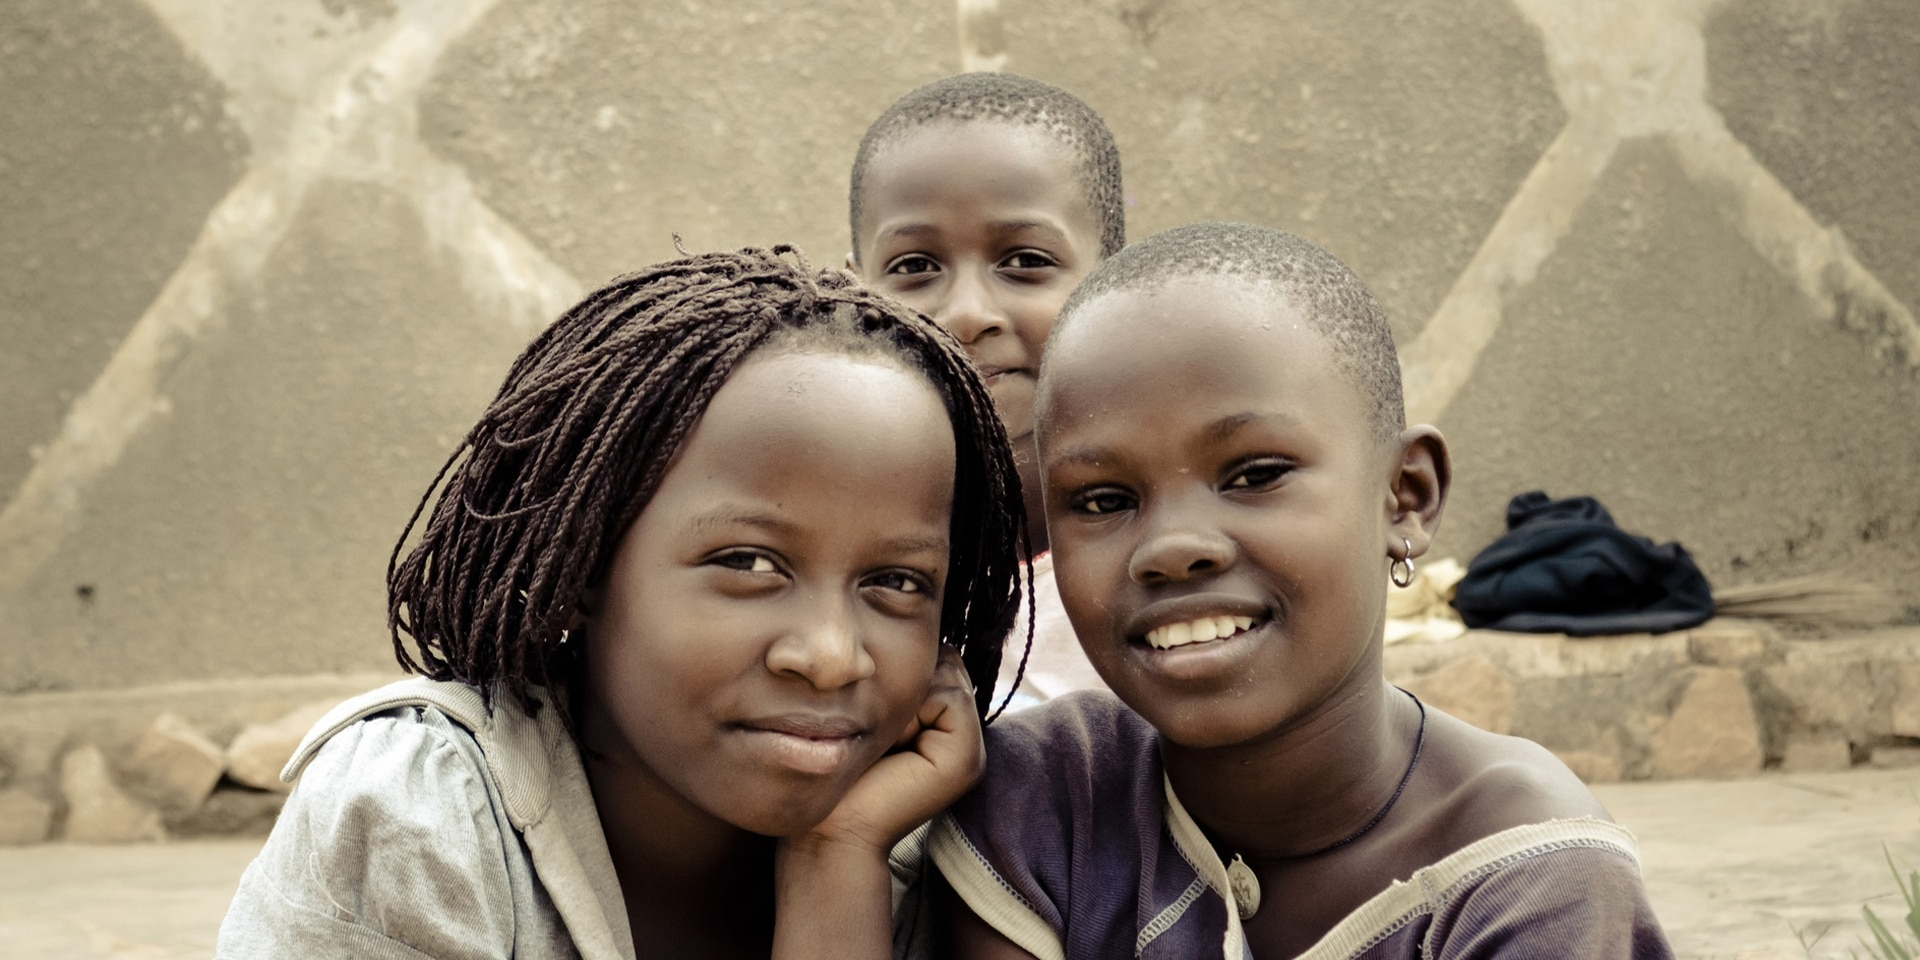 Three street children posing for the camera in Kampala, Uganda.